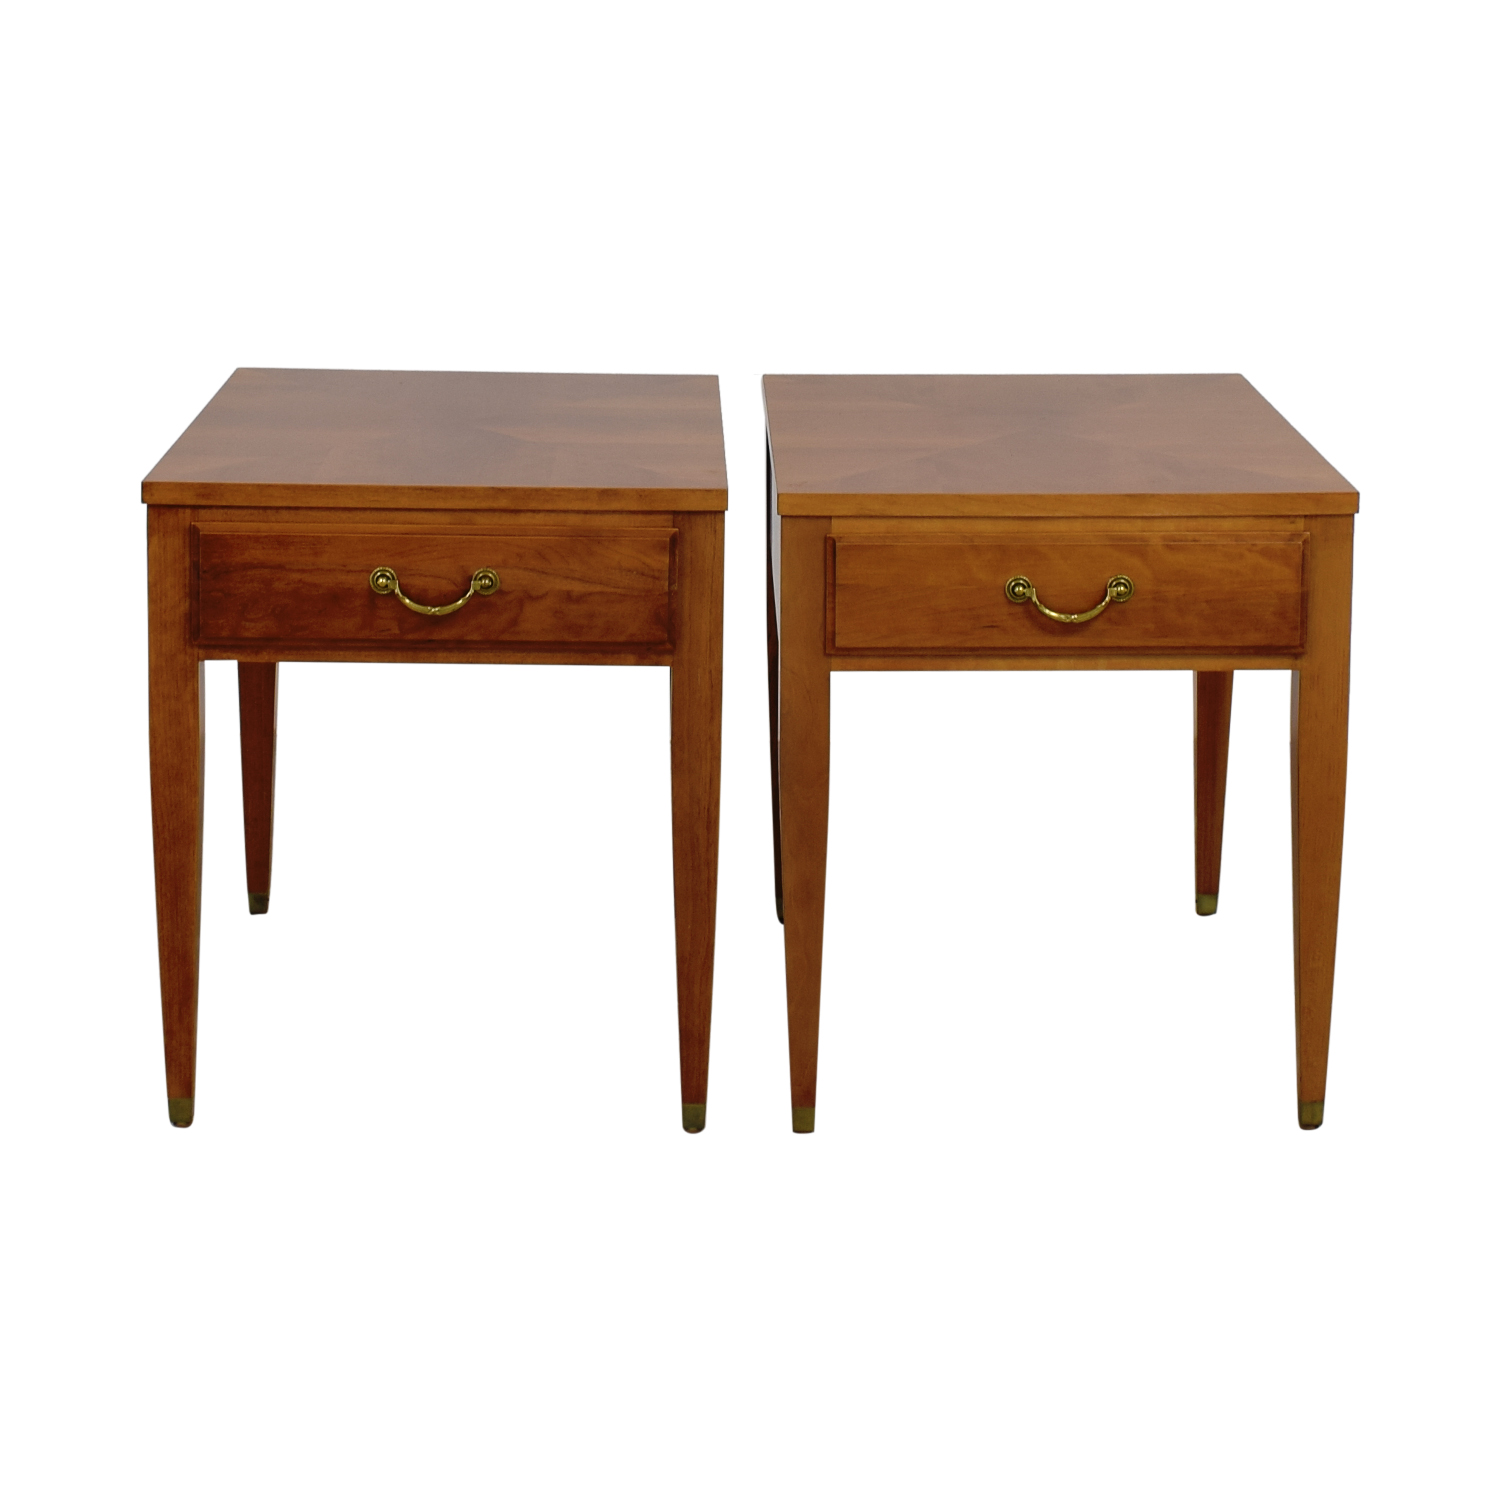 wood end tables. Ethan Allen Darlene Single Drawer Wood End Tables Nyc